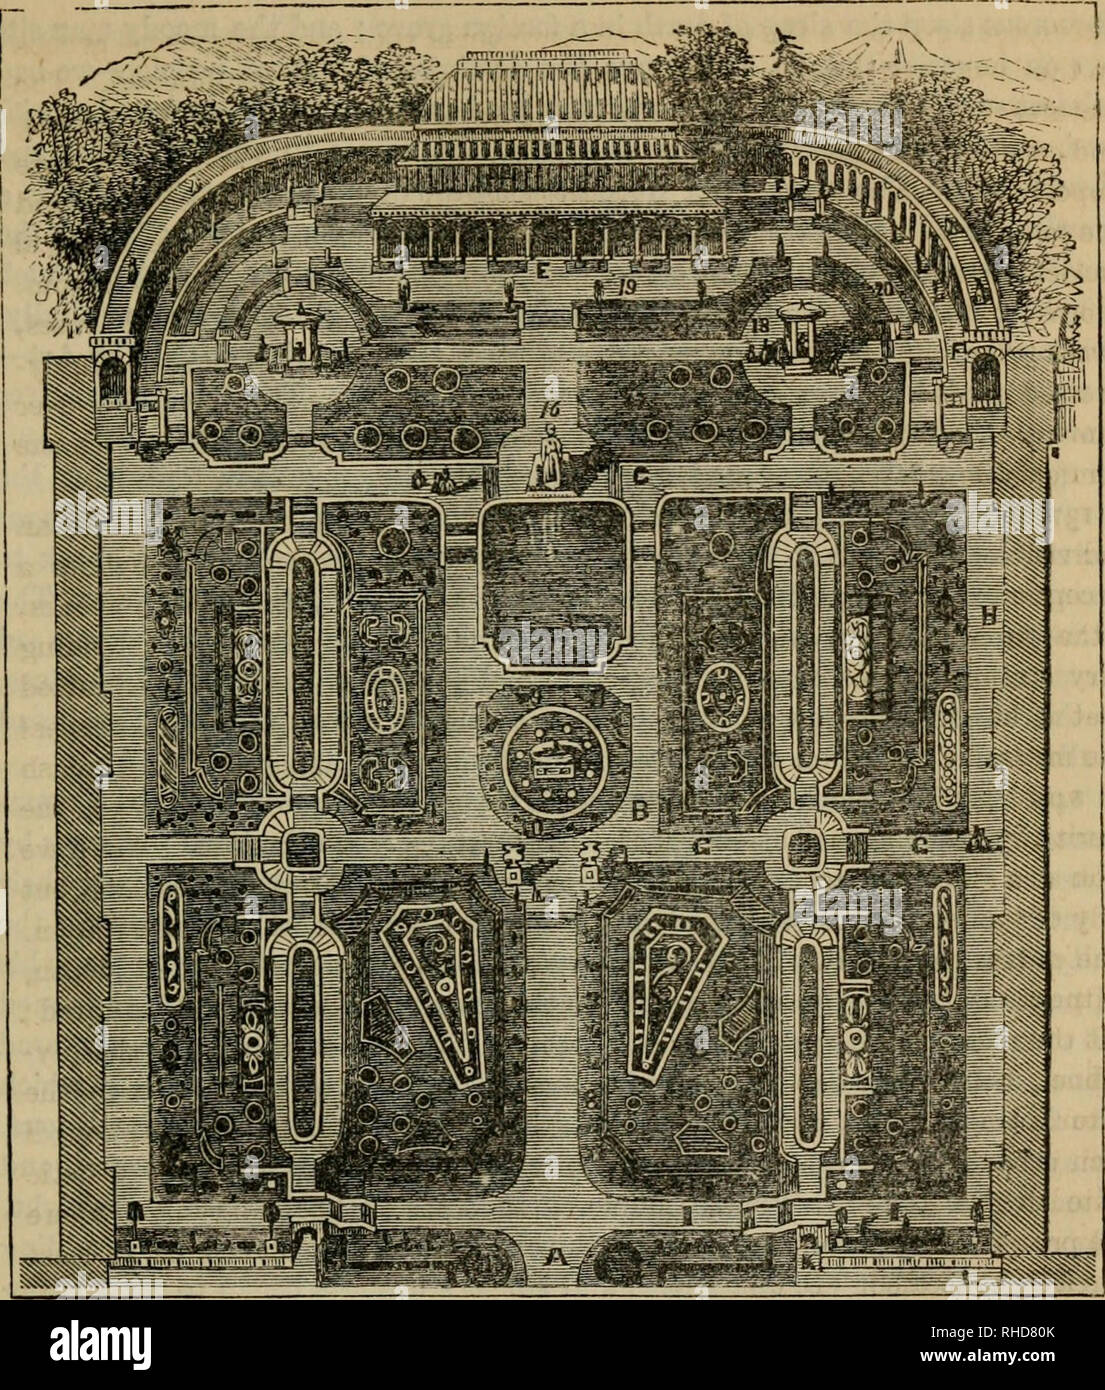 . The book of garden management : Comprising information on laying out and planting gardens... Gardening -- Great Britain. GABDEIf AND CONSEETATOEY OF THE EOYAL nOKTICULXUEAL SOCIETY. CHAPTER VI. LAYING OUT GAEDEi;r3 13S, Some of cm- readersmay remember Gore llousc; Keiisington, wten tlie presiding- deities of the place were the beautiful and accomplished Countess of Blessington and the fashionable Count D'Orsay, whose claim to be a leader of fashion was the smallest of his merits. Its portals were never closed to those who could wield pen or pencil, or had other claim to distinction ; and, am - Stock Image